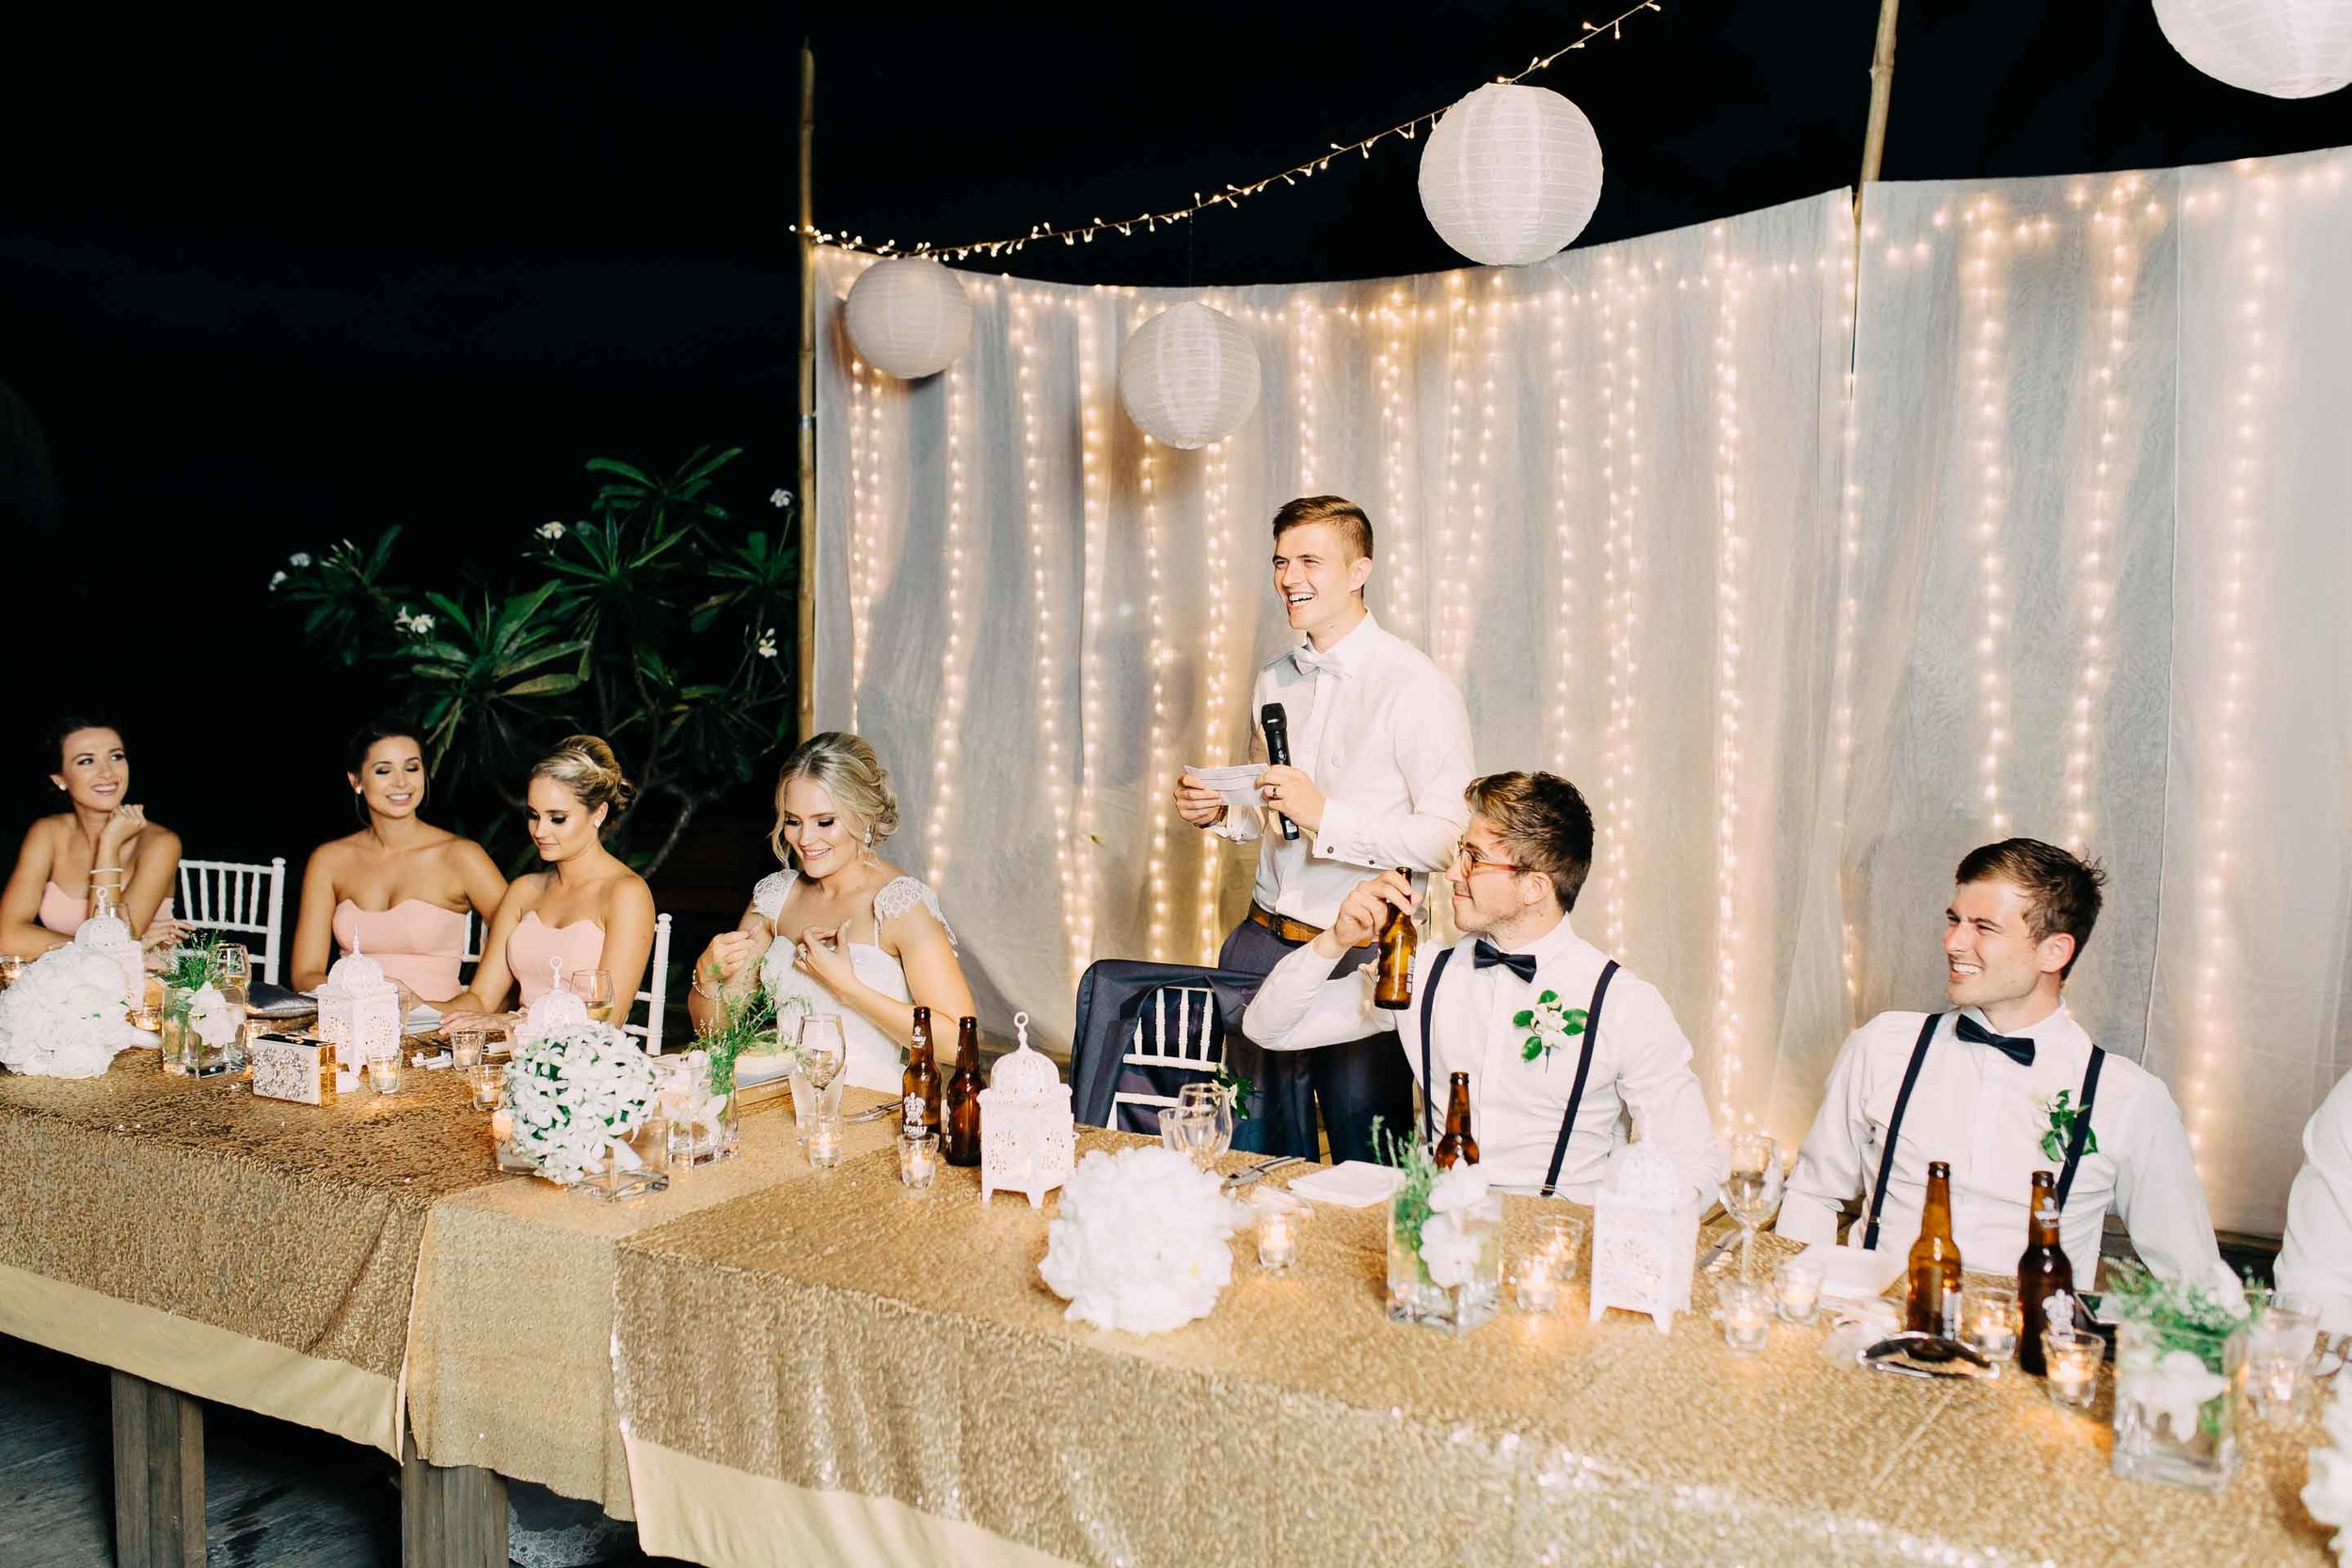 Beautiful white and golden themed Fiji wedding reception set up decorations decor warm white fairy lights at the Hilton